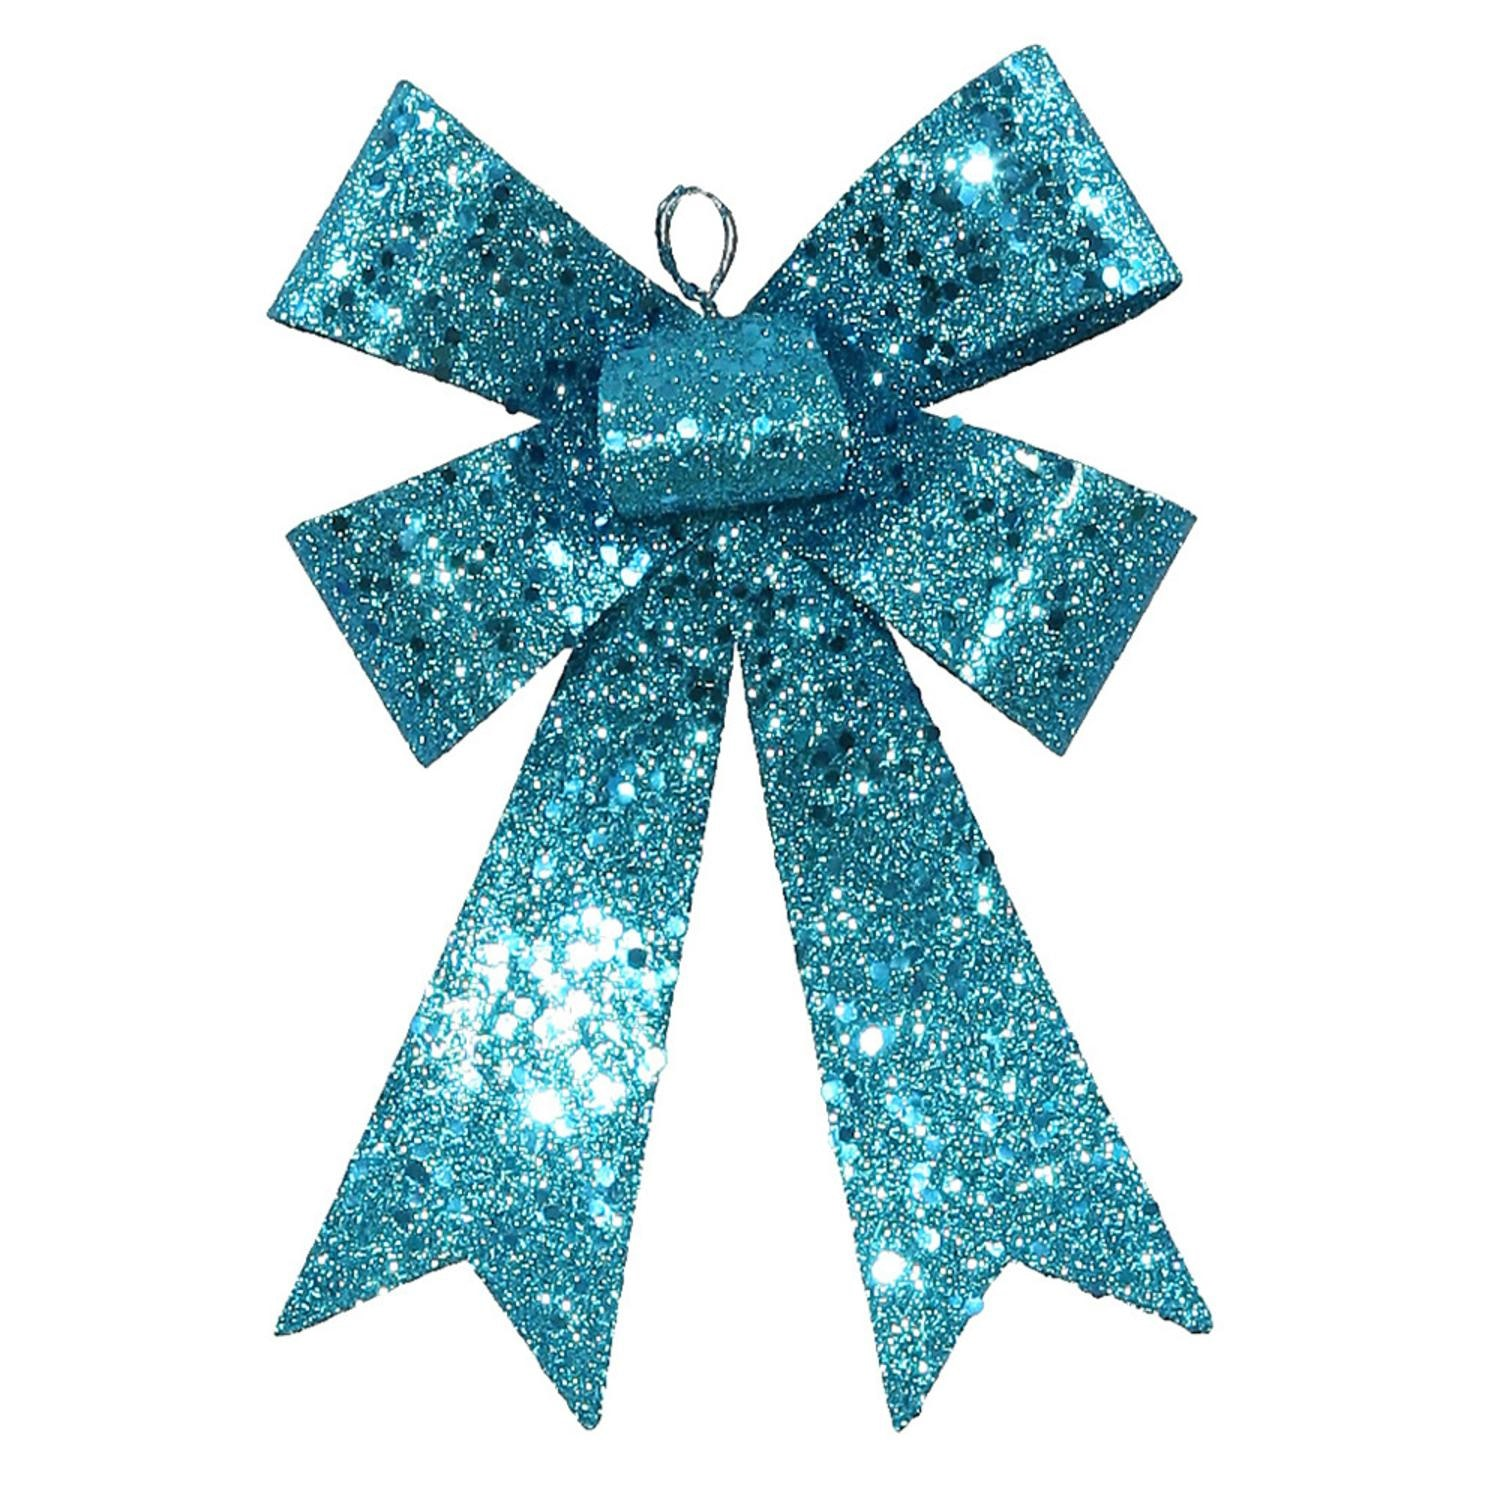 9 tiffany blue christmas decorations that are beyond stunning - Teal Christmas Ornaments